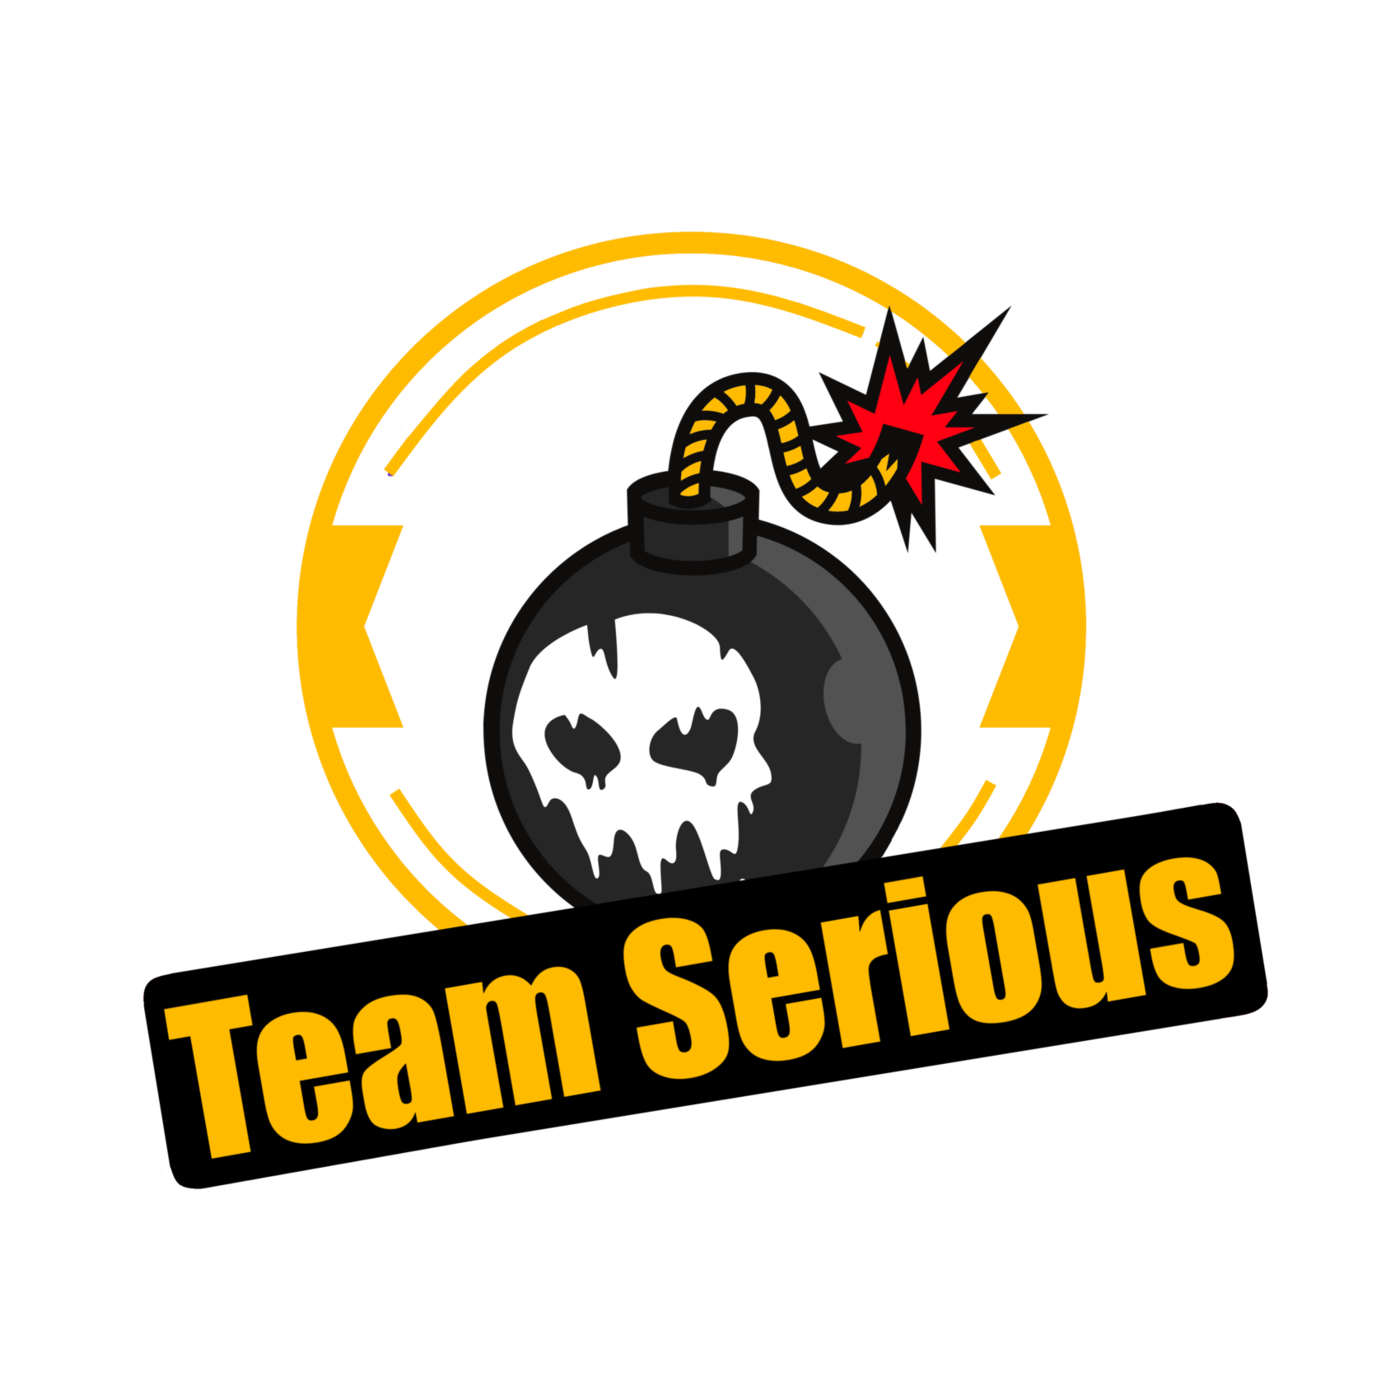 Team Serious DFW Talks - Originals